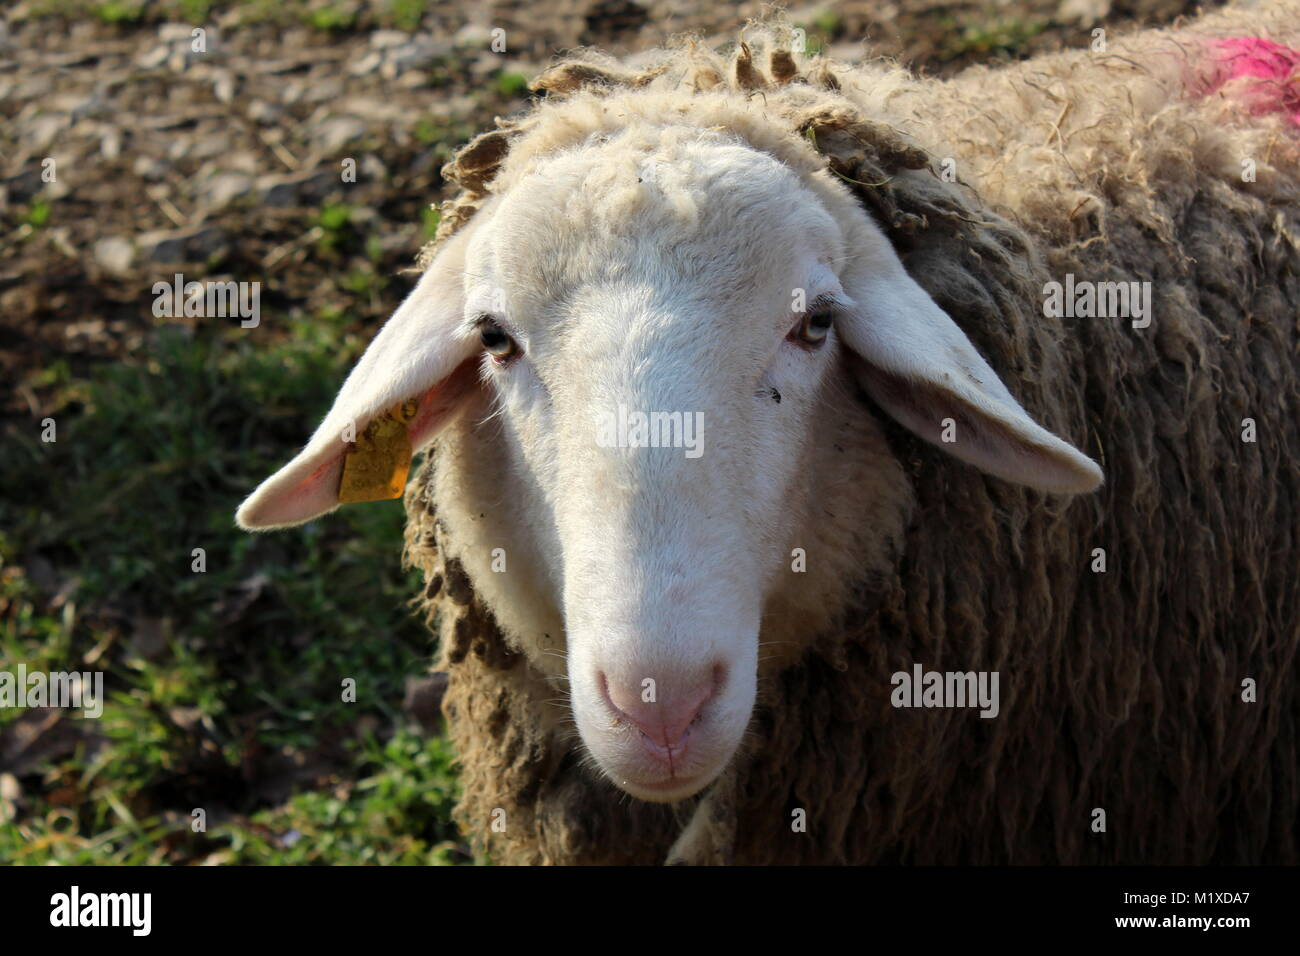 Sheep Ears High Resolution Stock Photography And Images Alamy